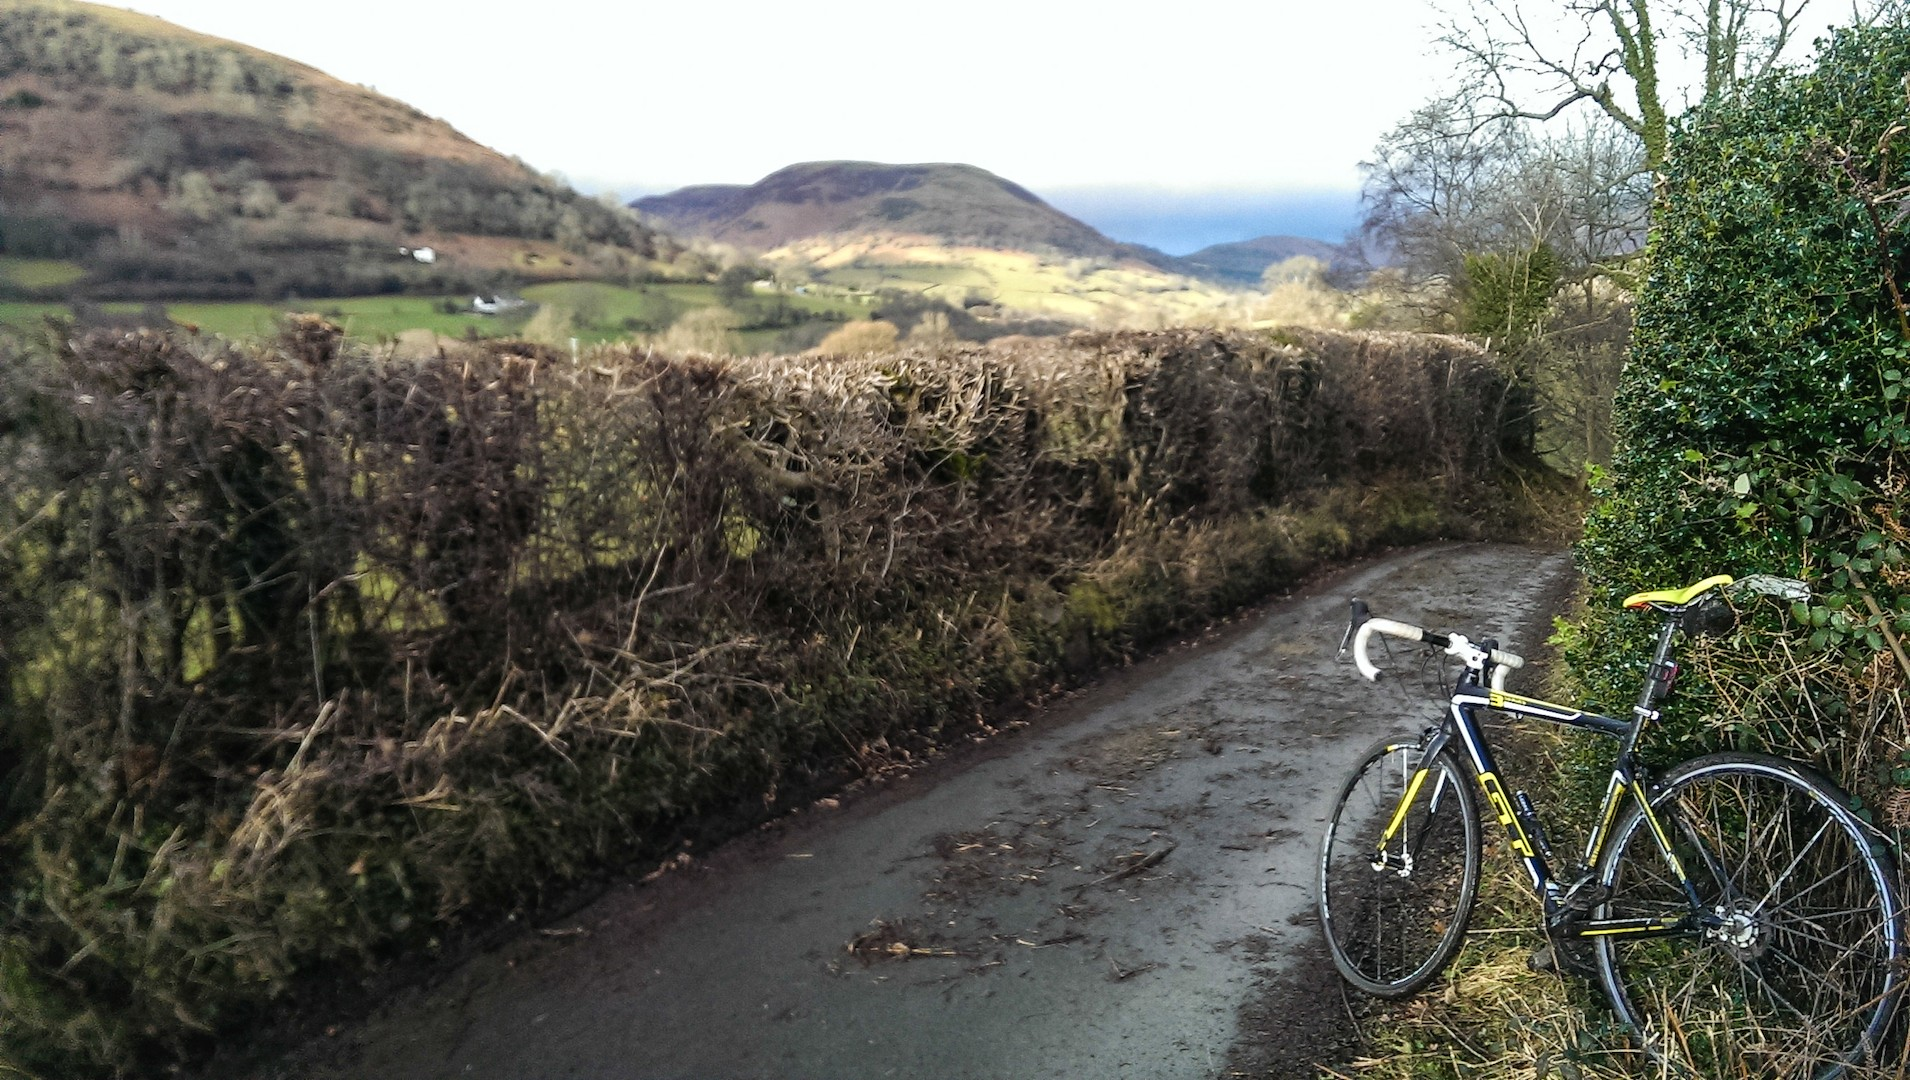 If you don't fancy road discs yet, Welsh lanes will change your mind…